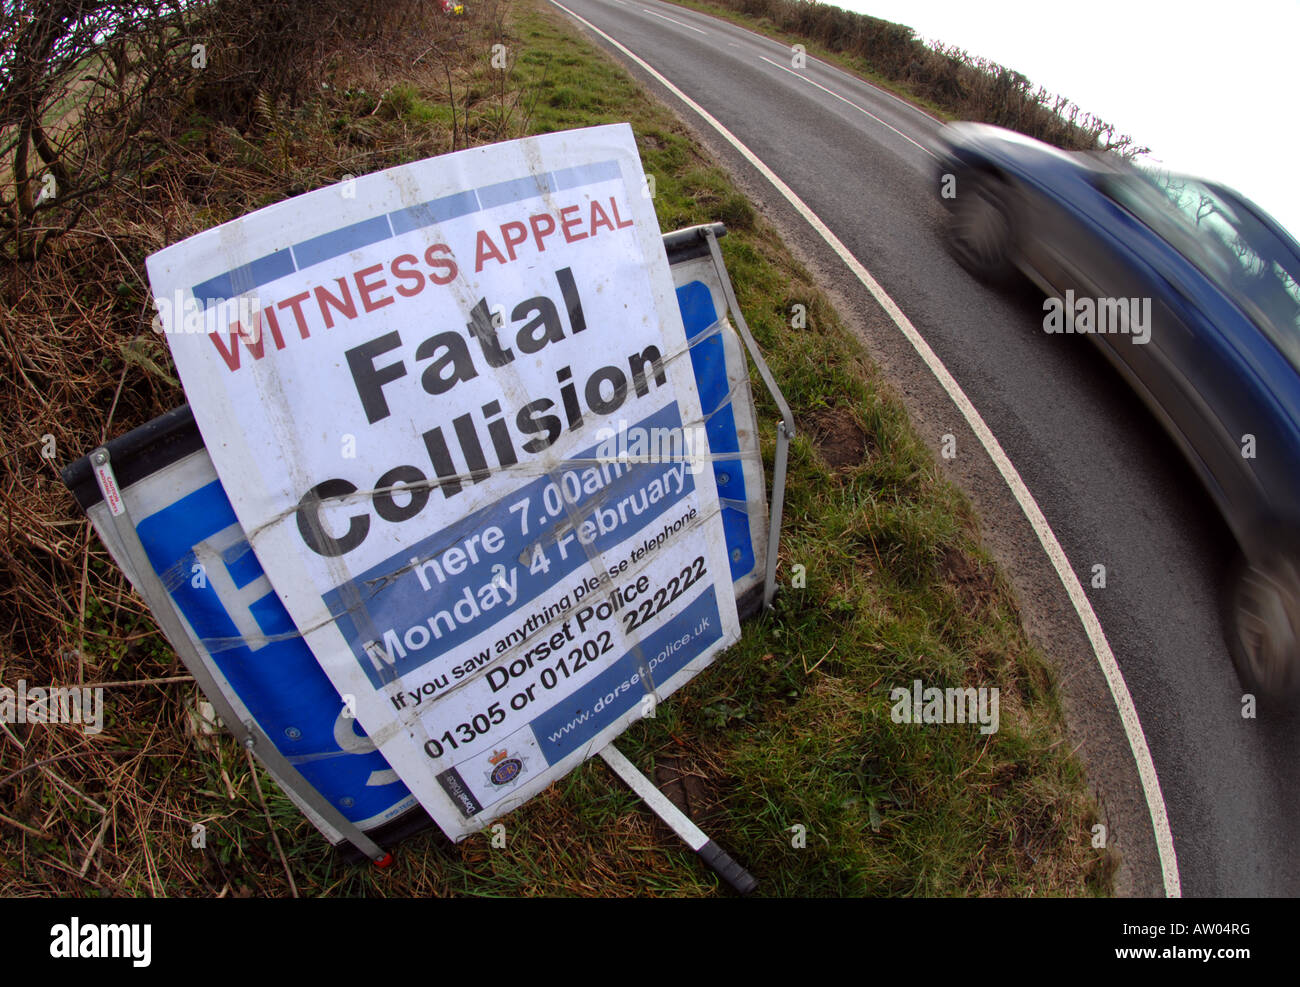 Witness appeal sign following a fatal car accident - Stock Image